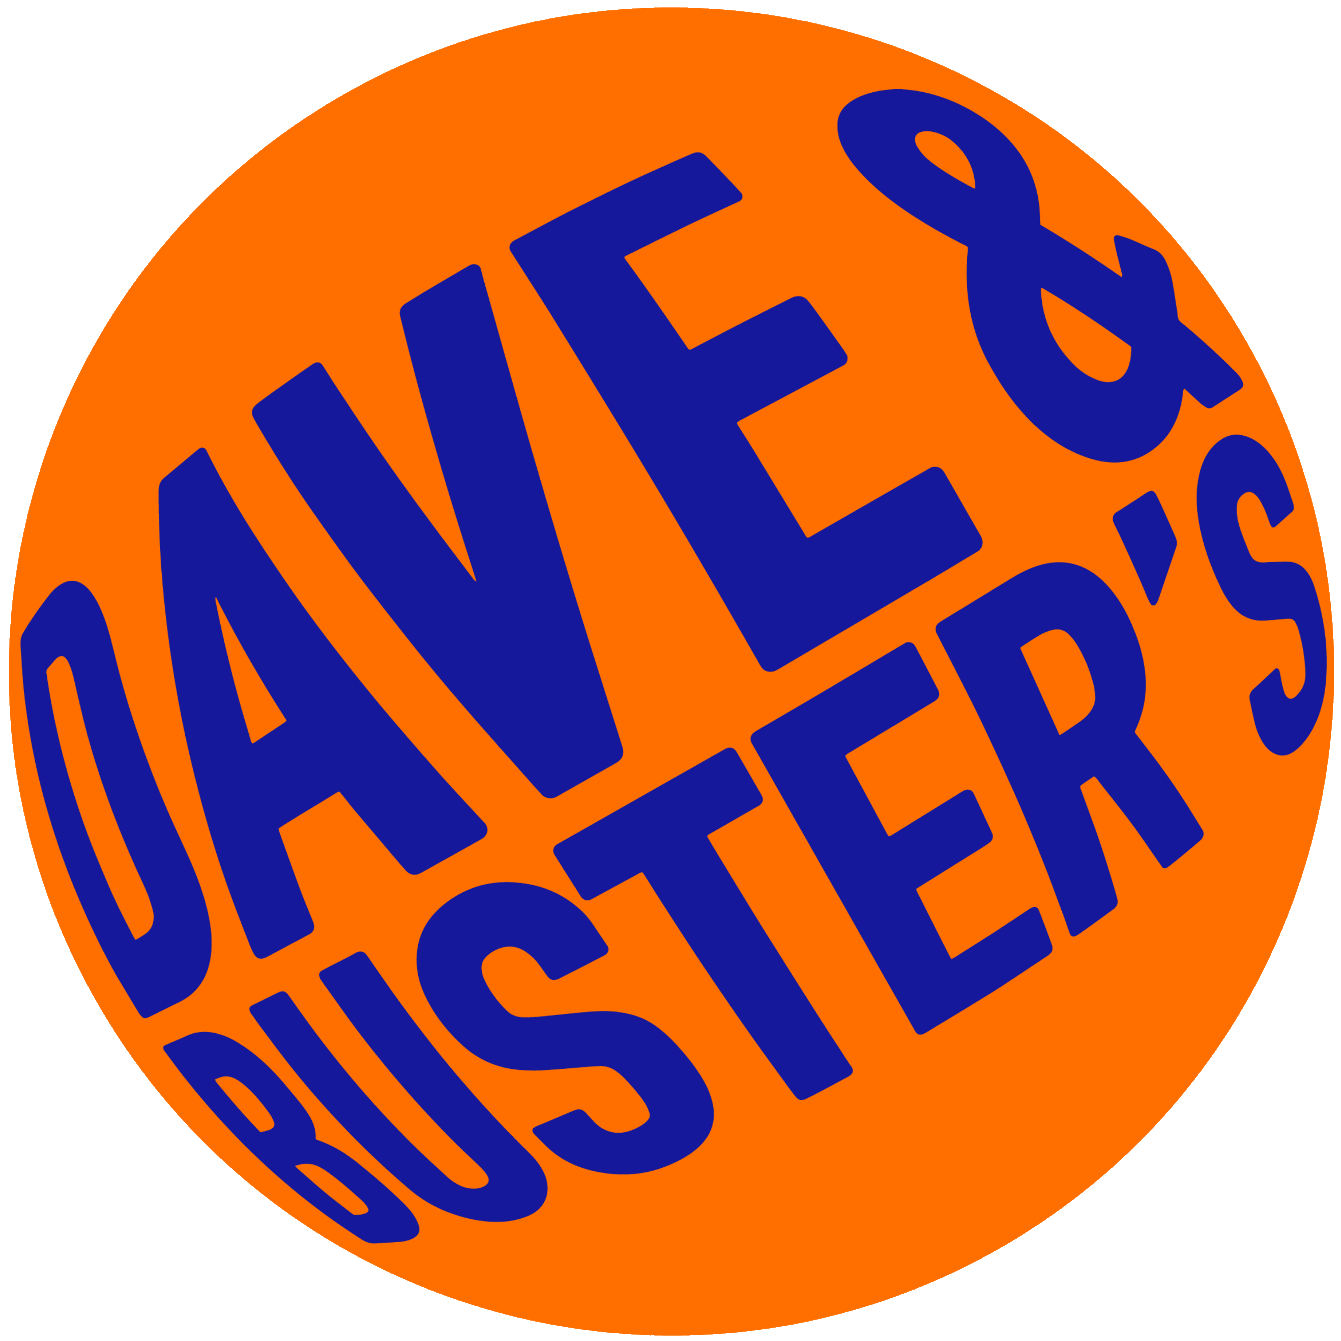 Dave & Buster's is an American restaurant and entertainment business with 70 locations across America. Click here for our PR case study.